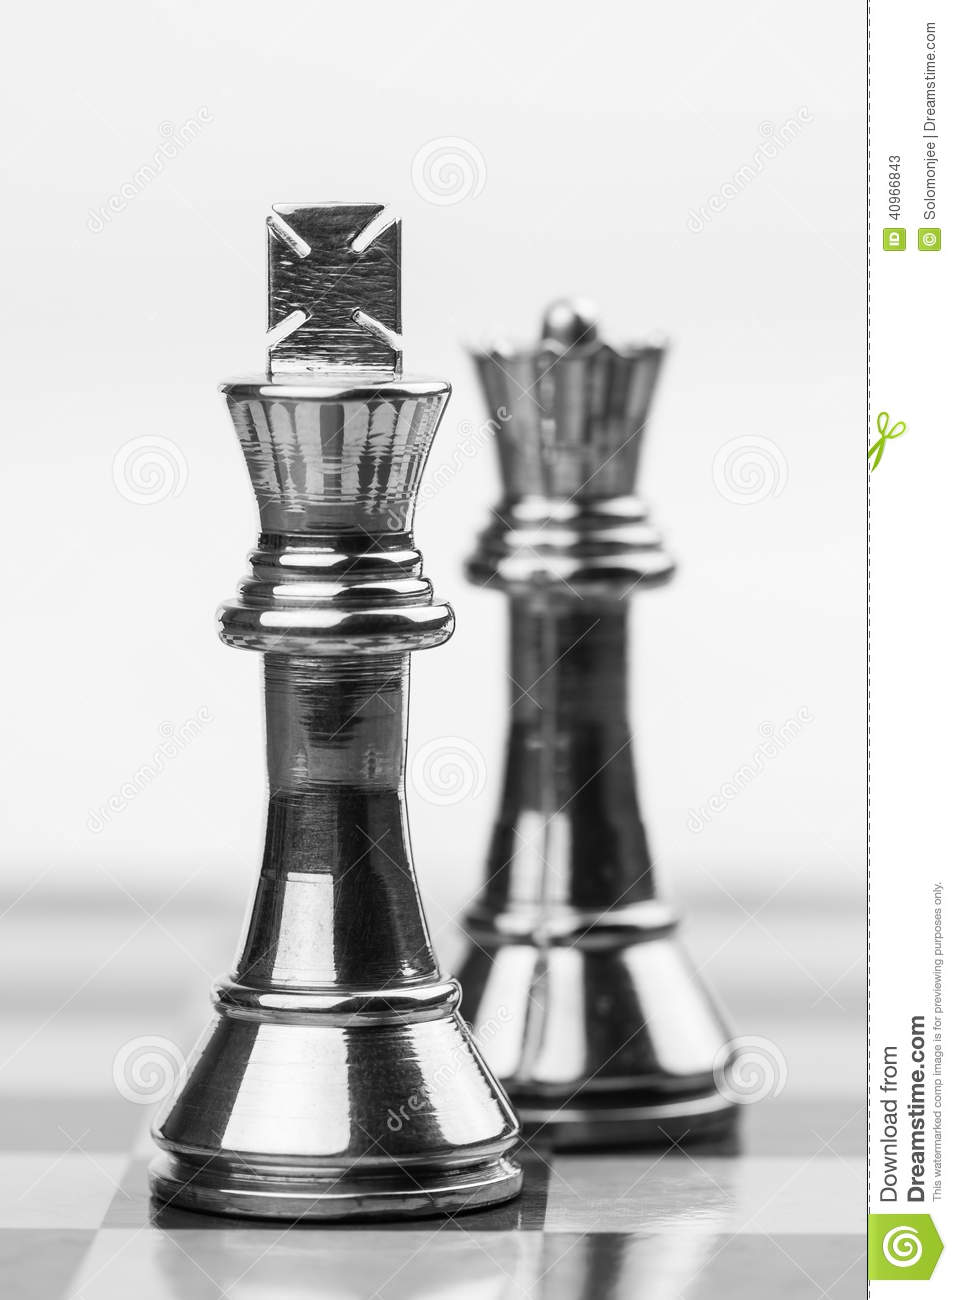 how to win chess with only a king and queen